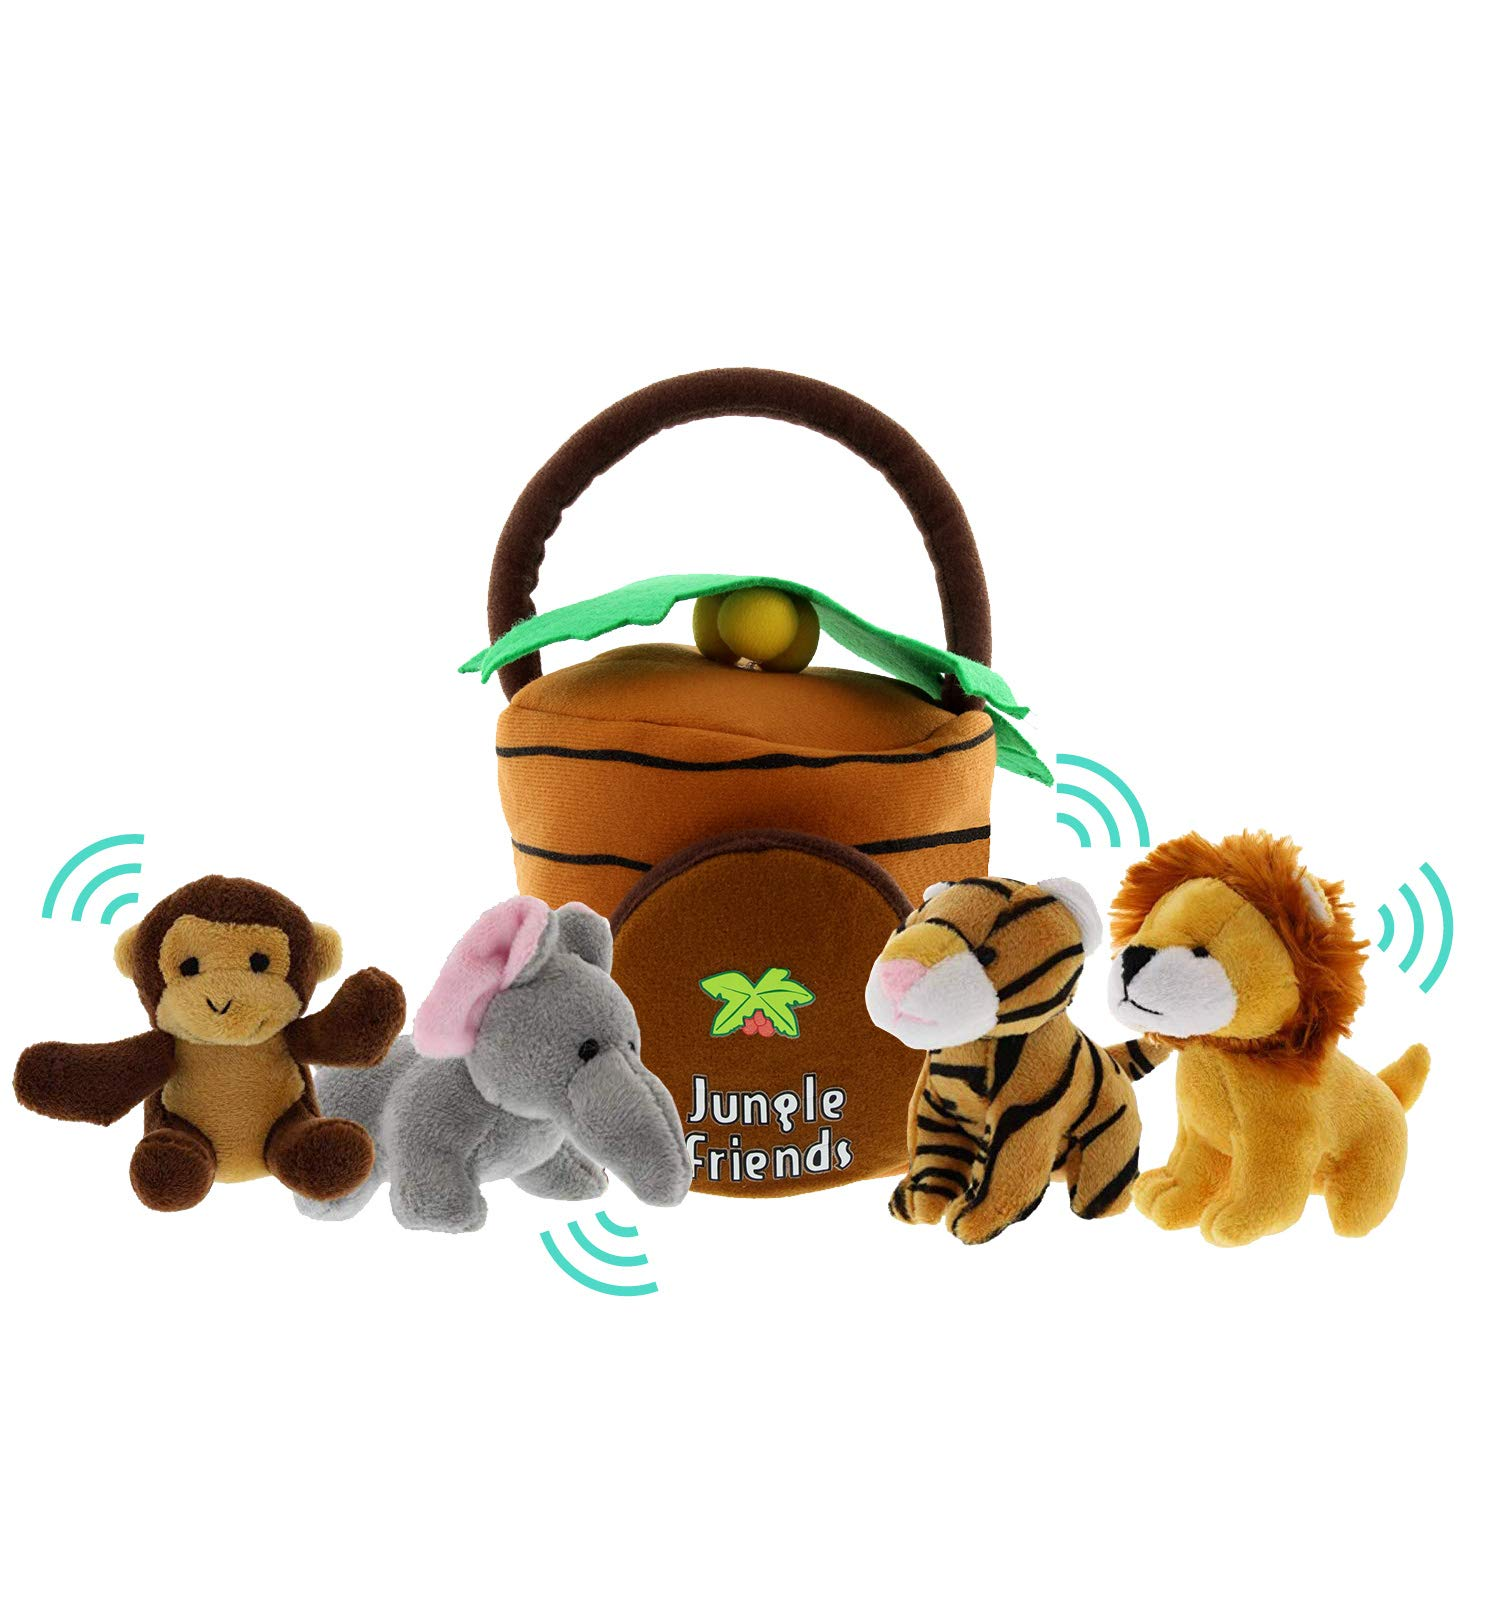 Jungle Animals Talking Plush Baby Toy – 5 Piece Small Stuffed Animals Set Including Jungle House Carrier and Stuffed Monkey, Lion, Tiger & Elephant – These Mini Toys are Ideal for Boys and Girls